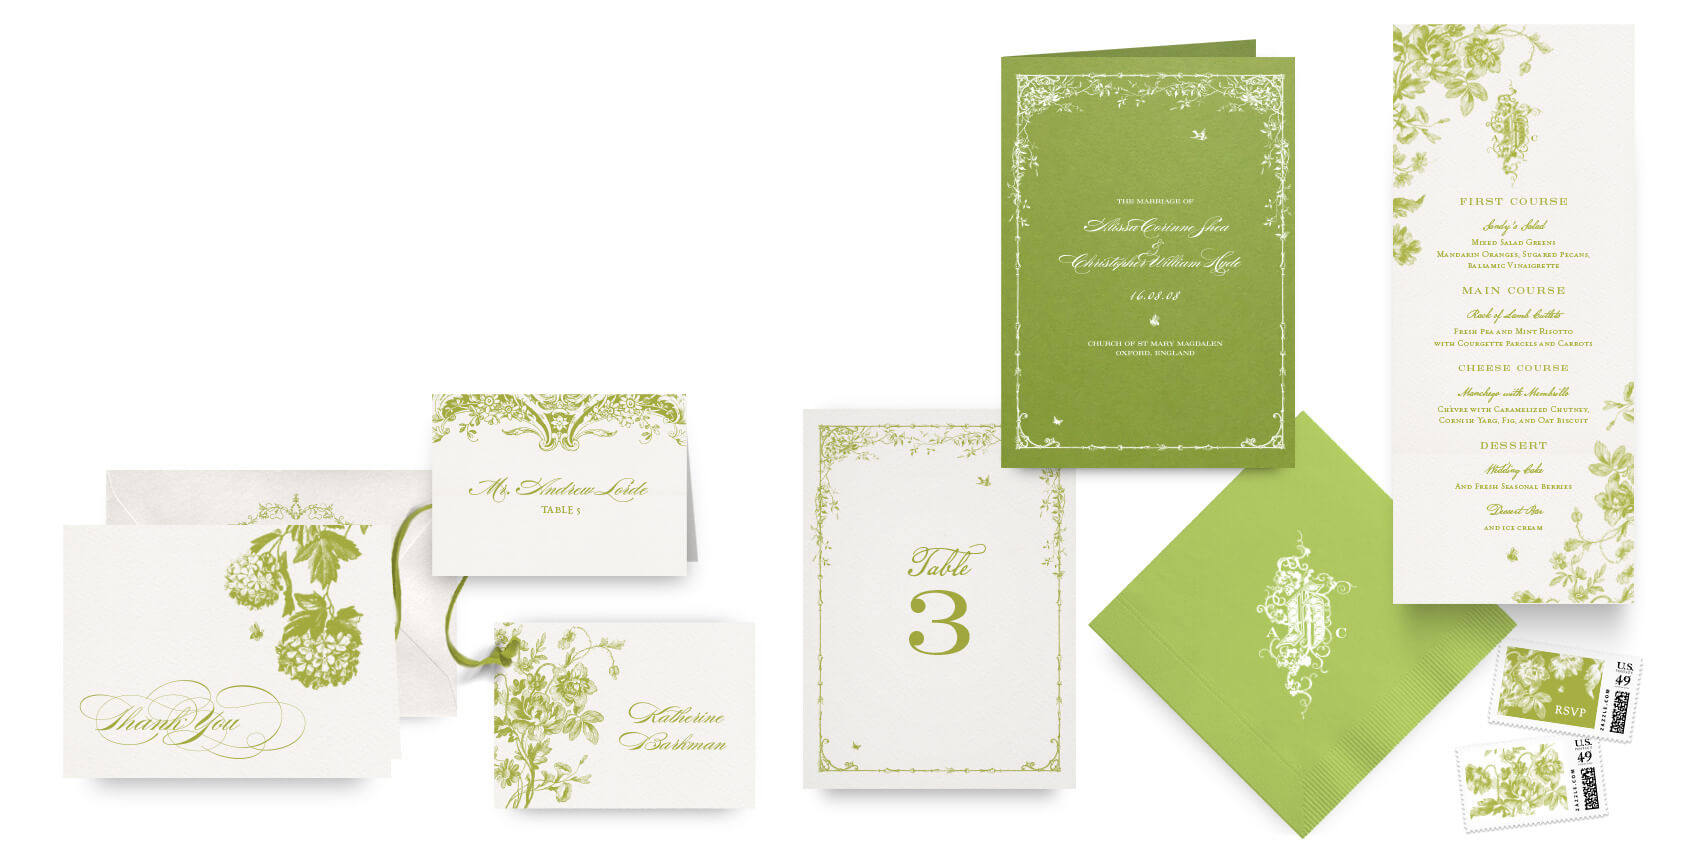 Botanical garden menus, programs and wedding accessories